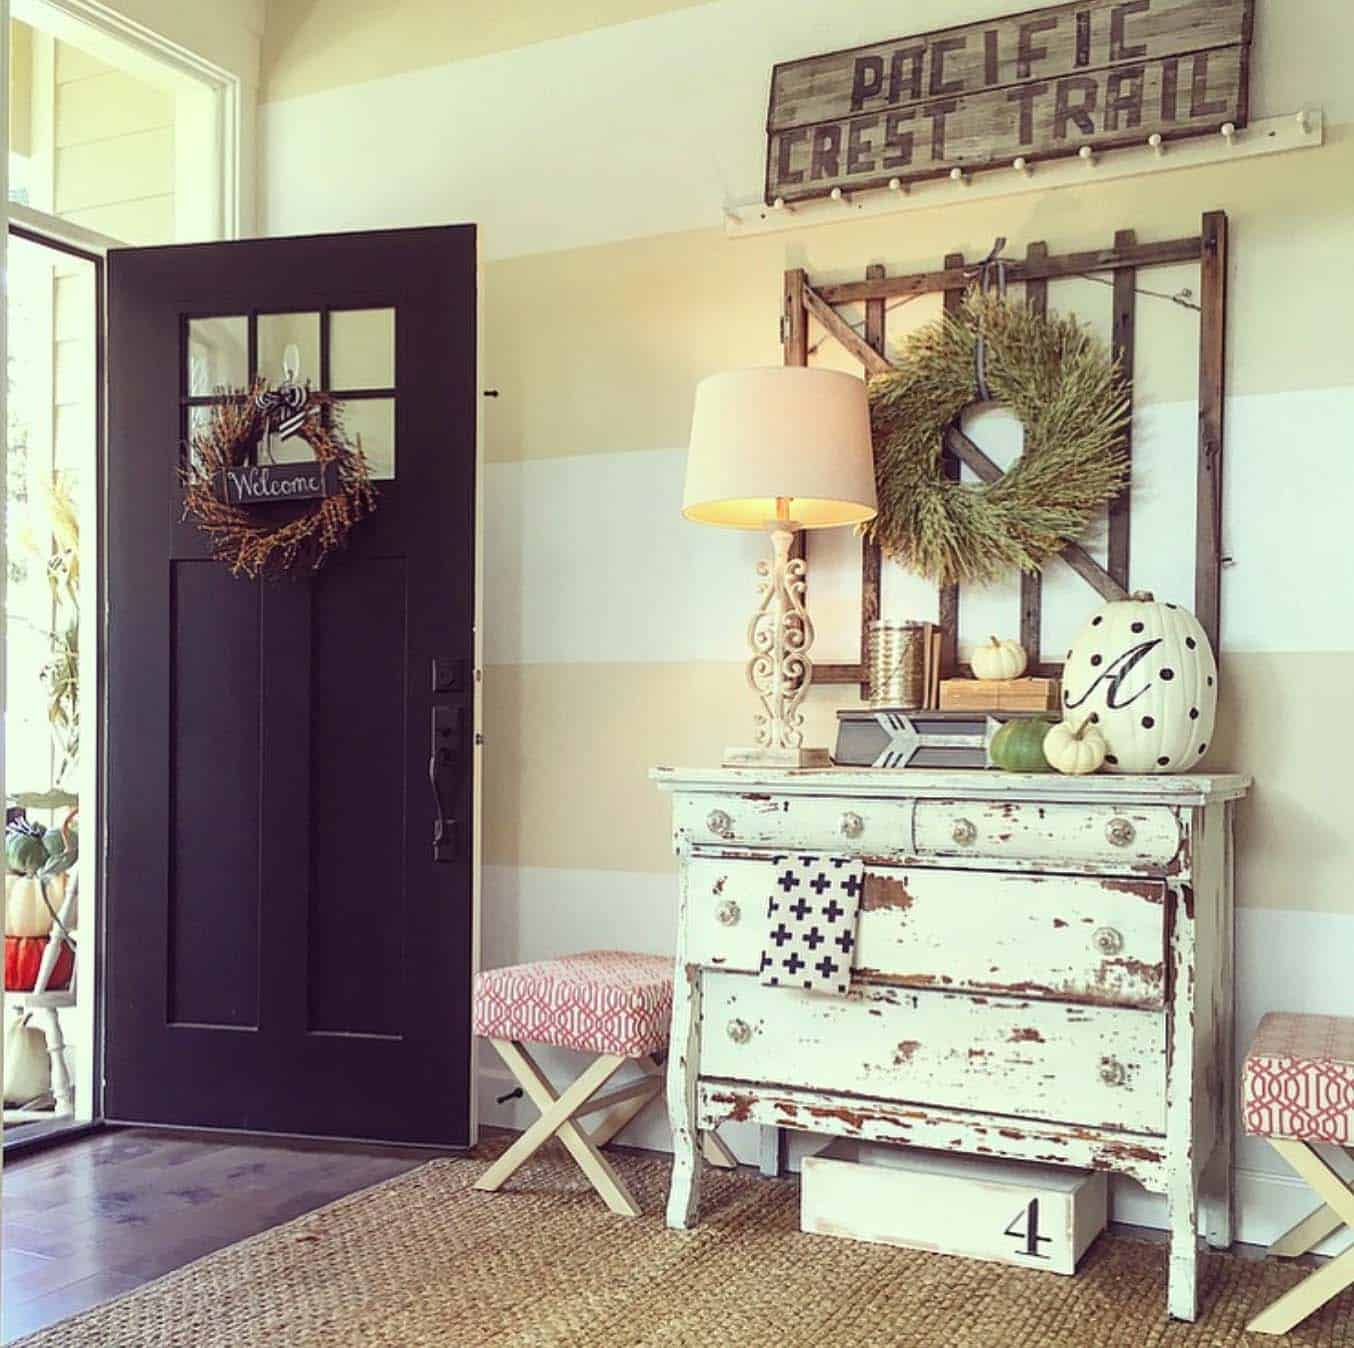 Fall-Inspired Entryway Decorating Ideas-28-1 Kindesign